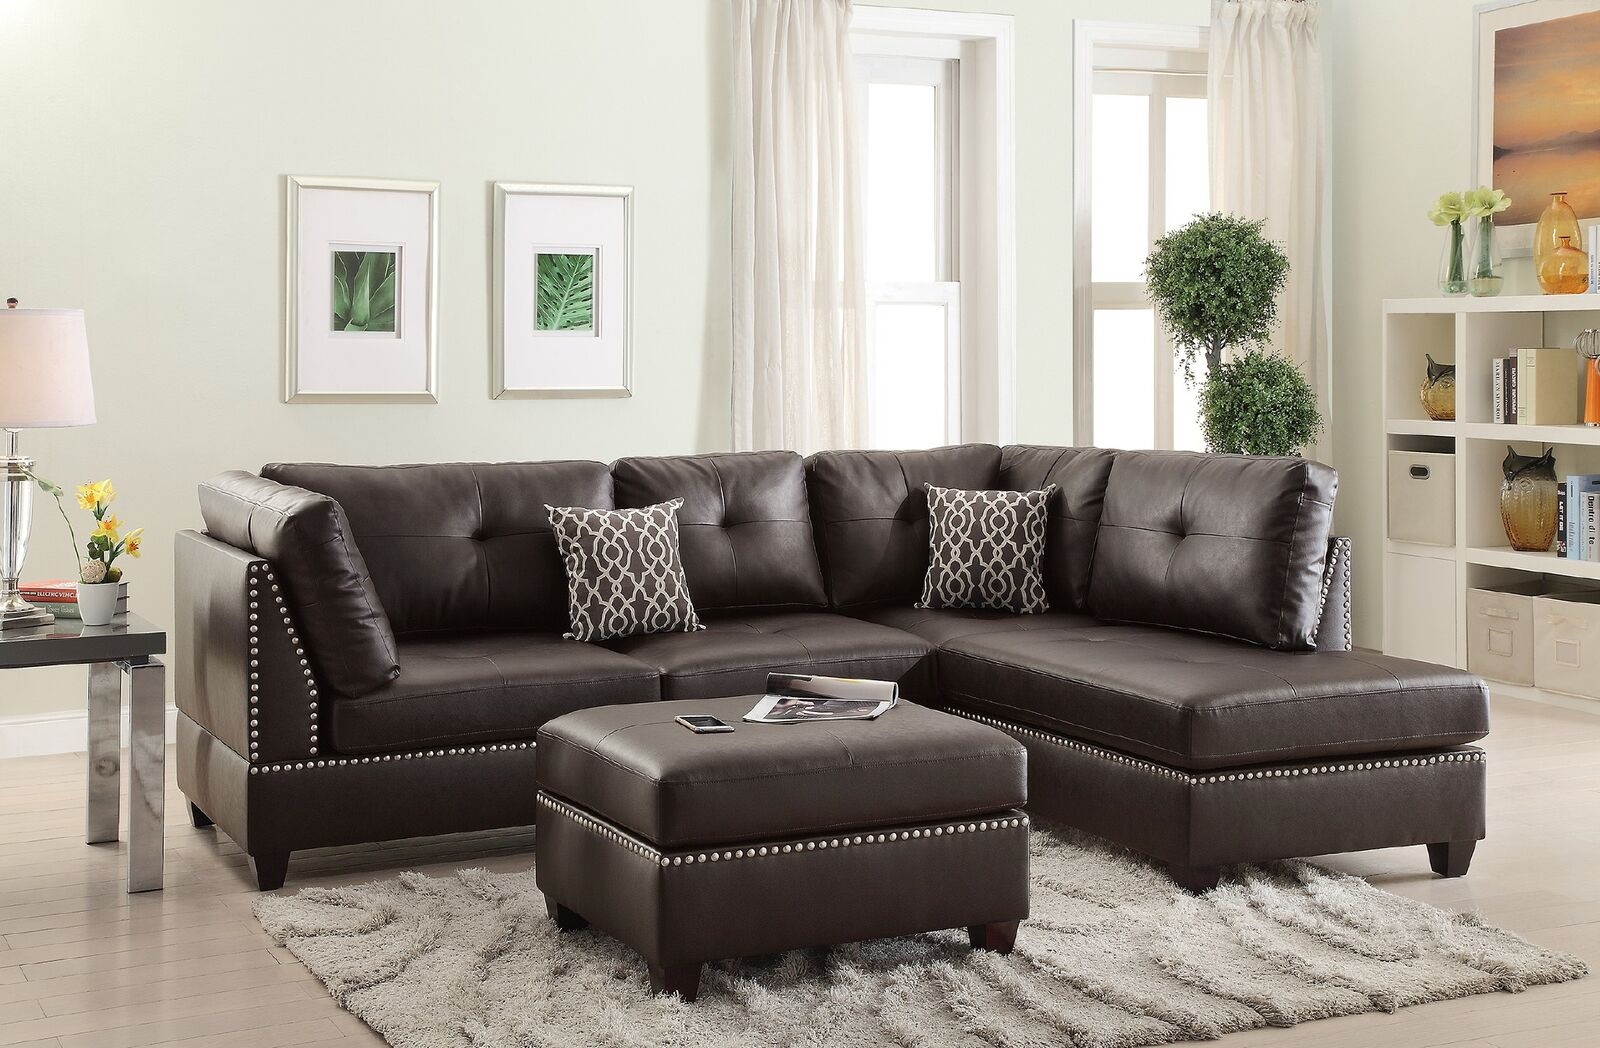 New Espresso Leather Sectional Sofa Chaise Hot Sectionals